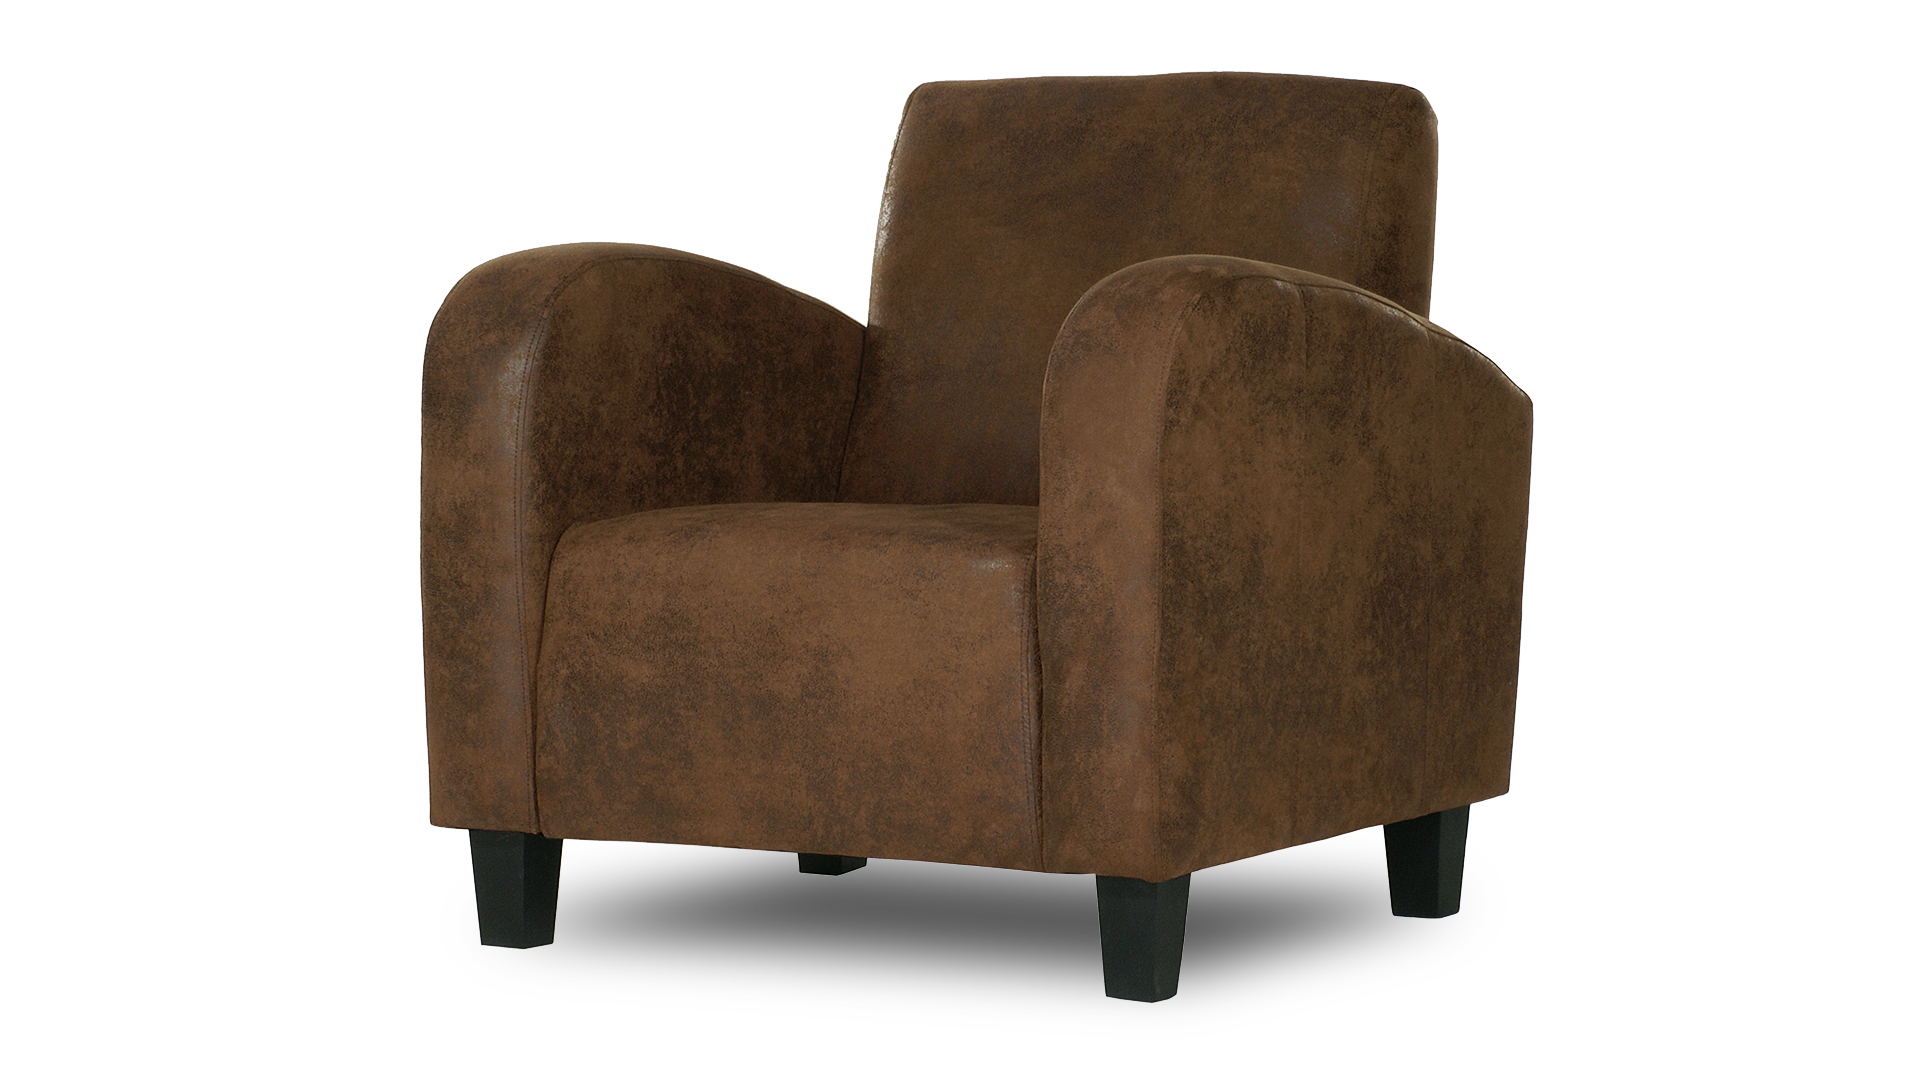 fauteuil microfibre imitation cuir vieilli marron clair wigam mobiliermoss le blog mobilier moss. Black Bedroom Furniture Sets. Home Design Ideas